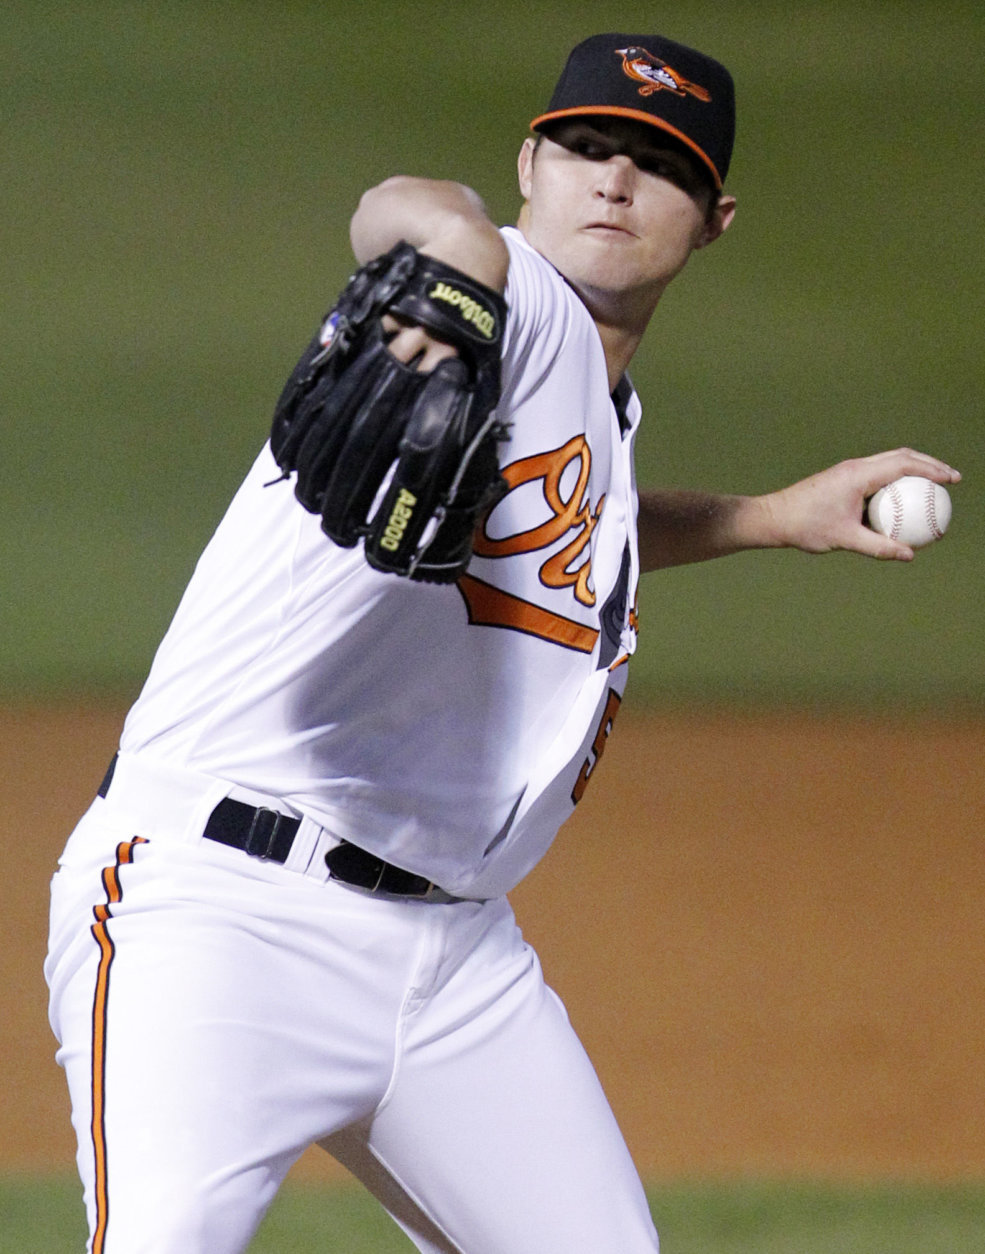 Baltimore Orioles pitcher Zach Britton throws in the second inning during a spring training baseball game against the New York Yankees in Sarasota, Fla., Monday, March 7, 2011.  (AP Photo/Gene J. Puskar)